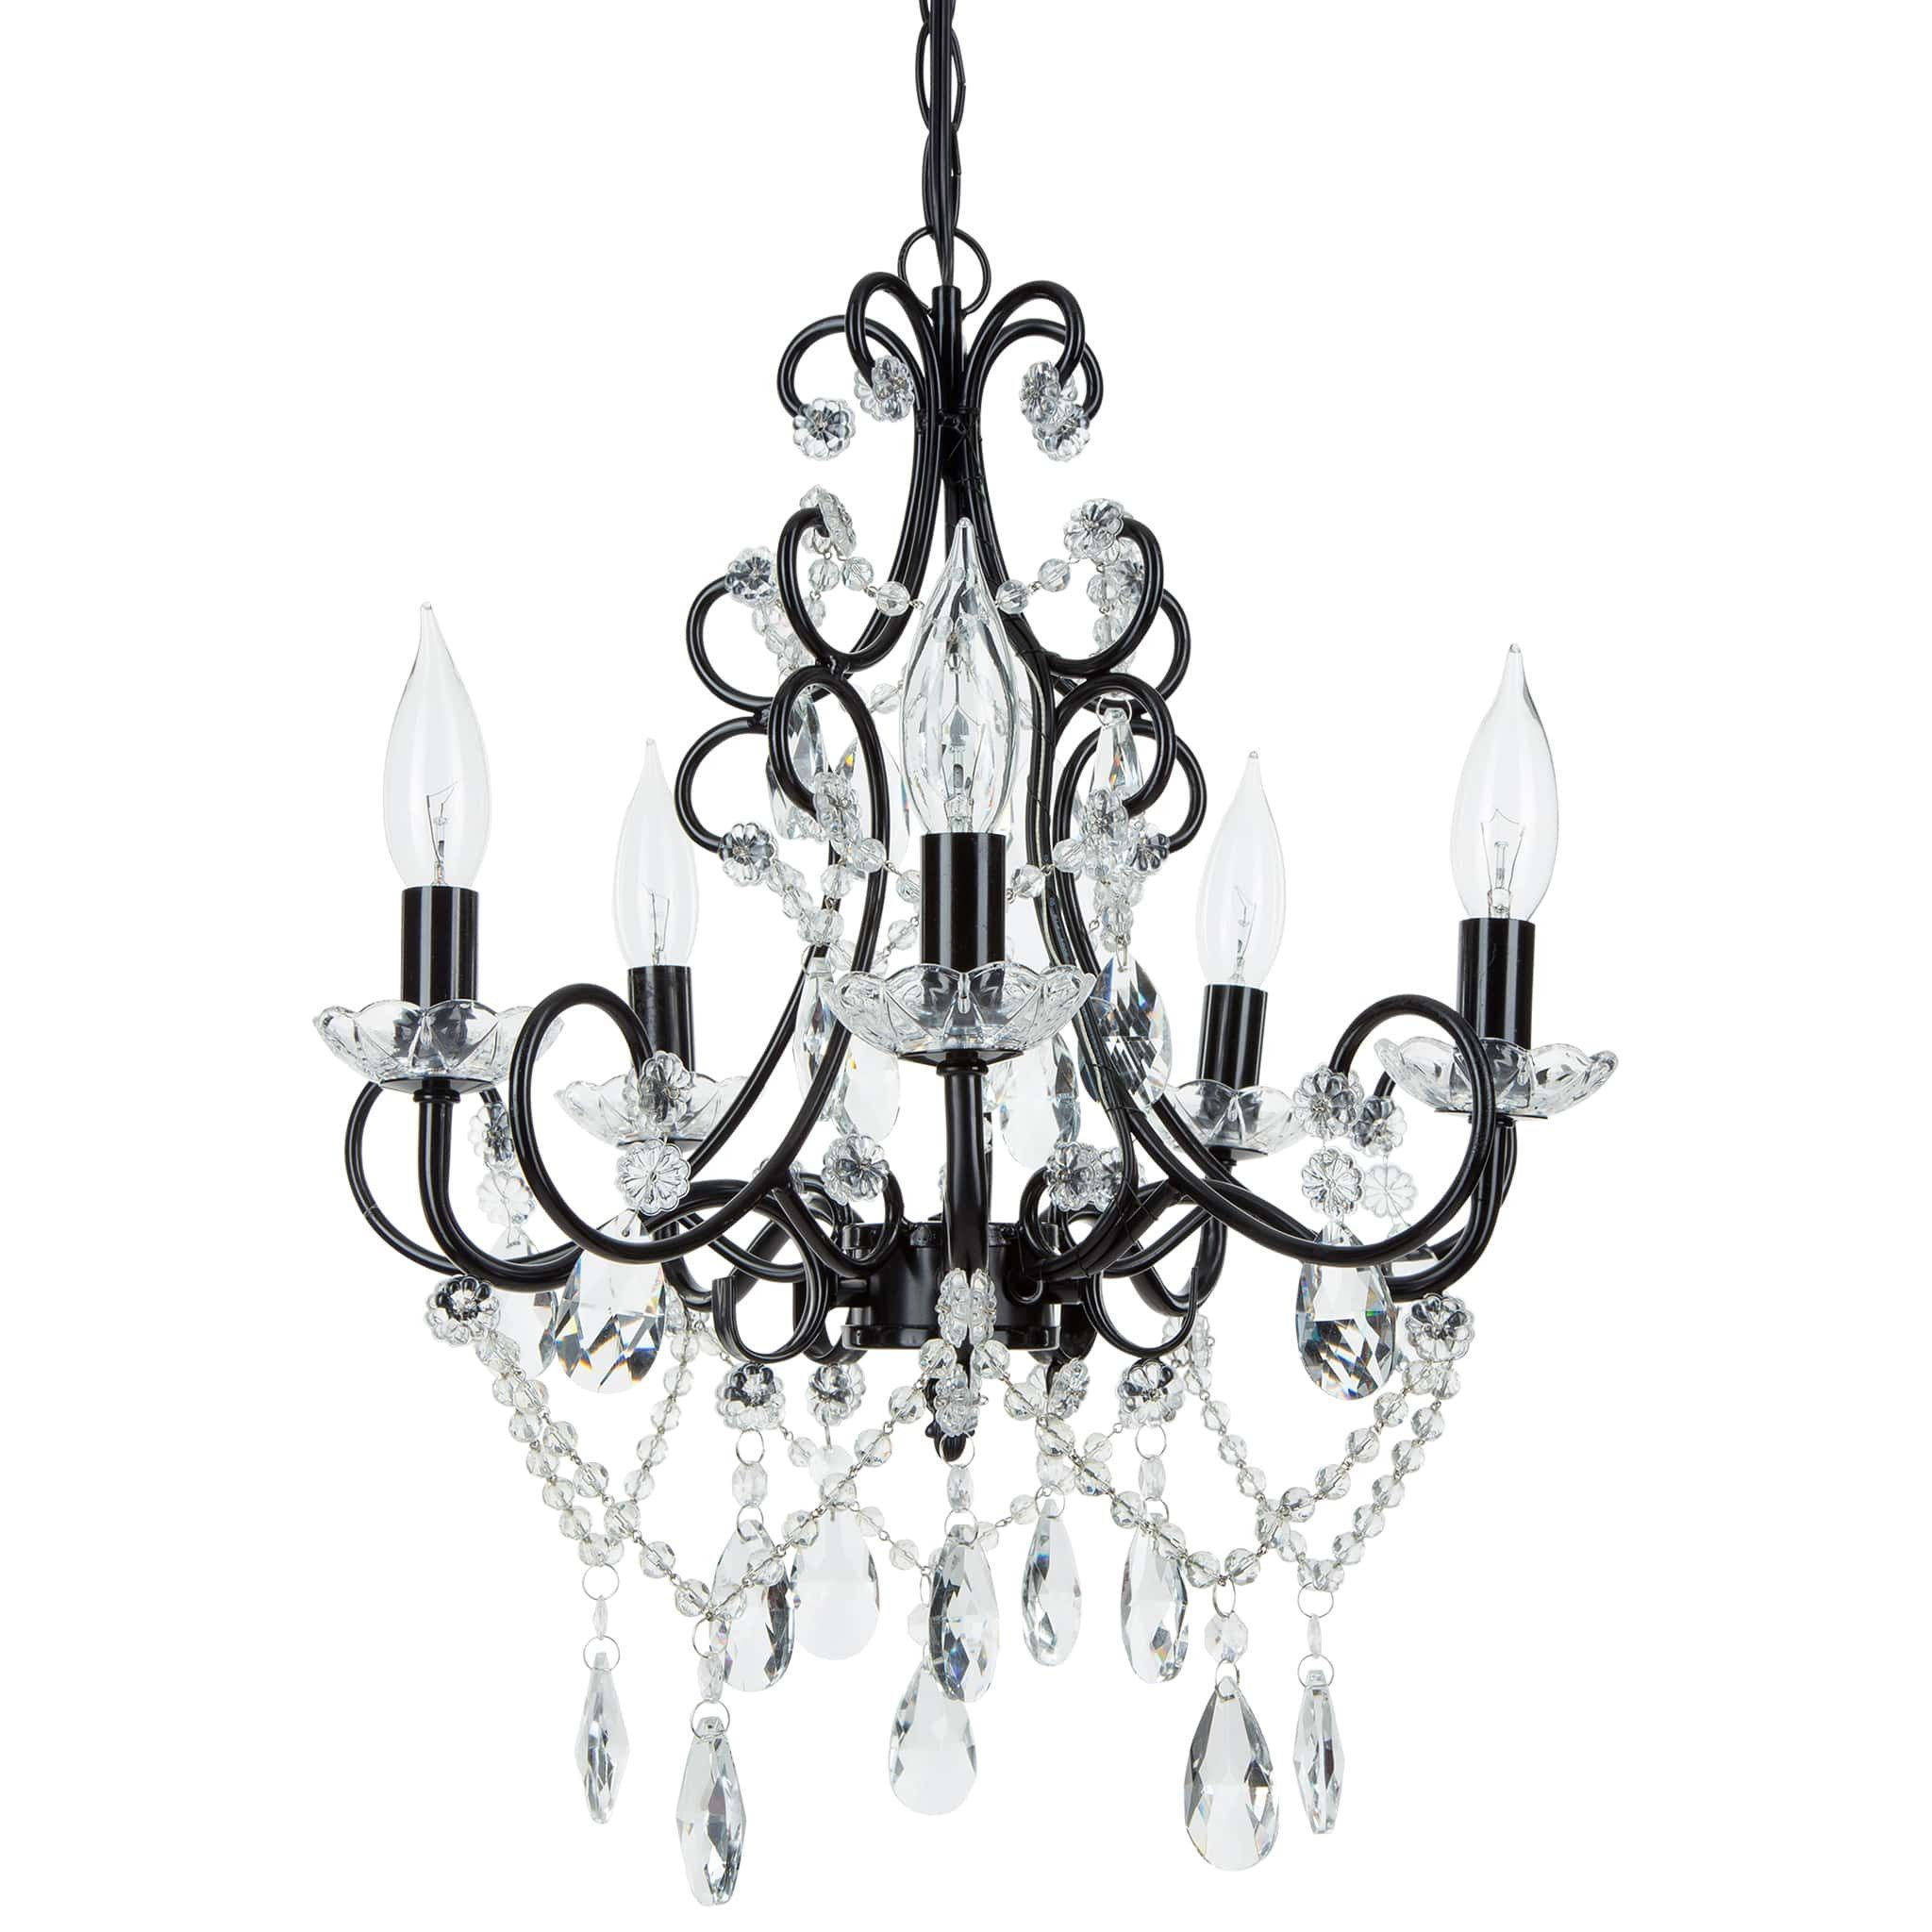 5 Light Classic Crystal Plug In Chandelier Black In